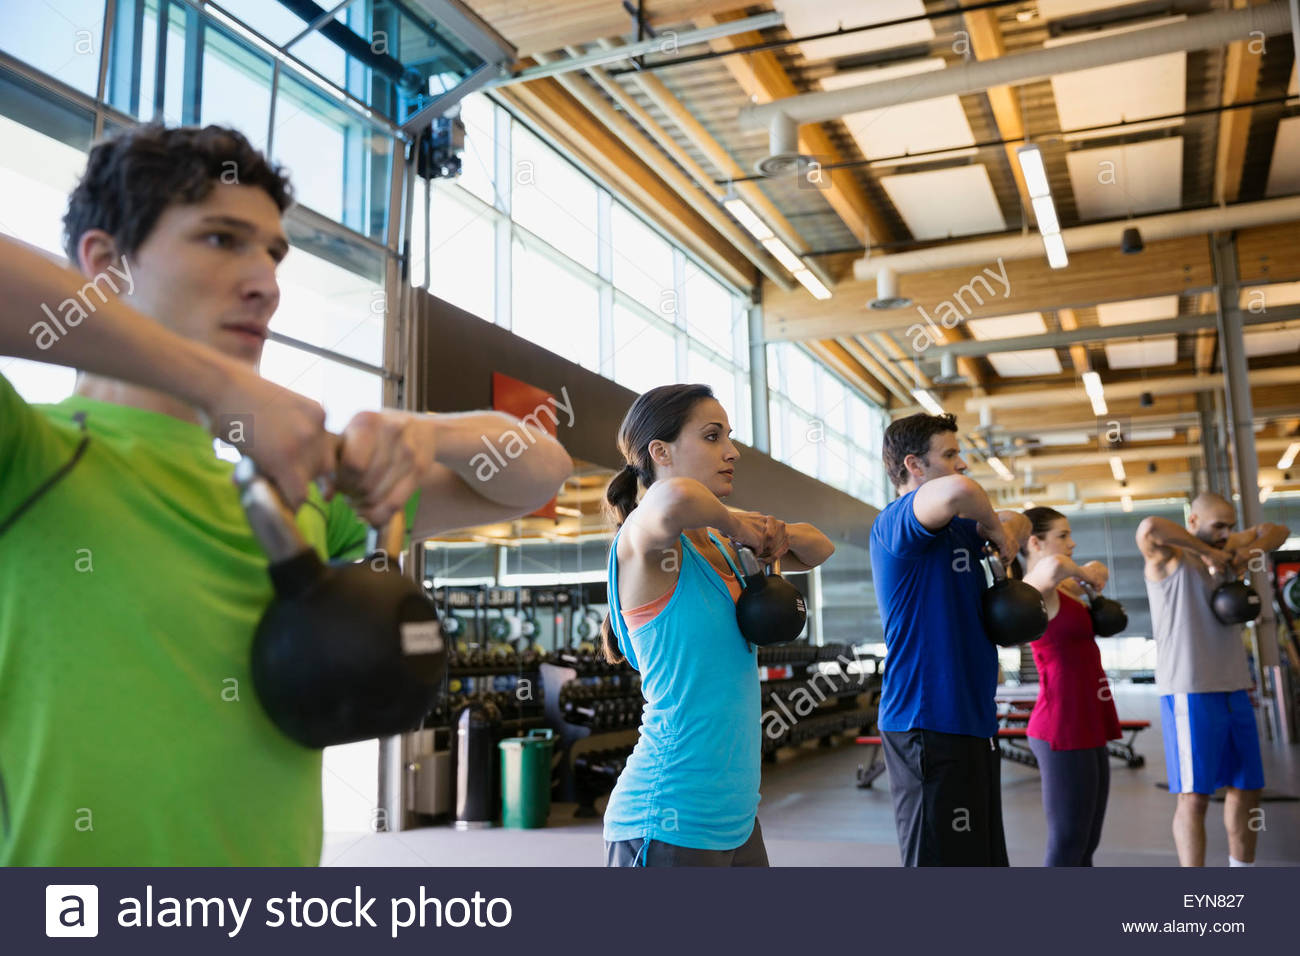 Exercise class doing kettlebell pulls in a row - Stock Image